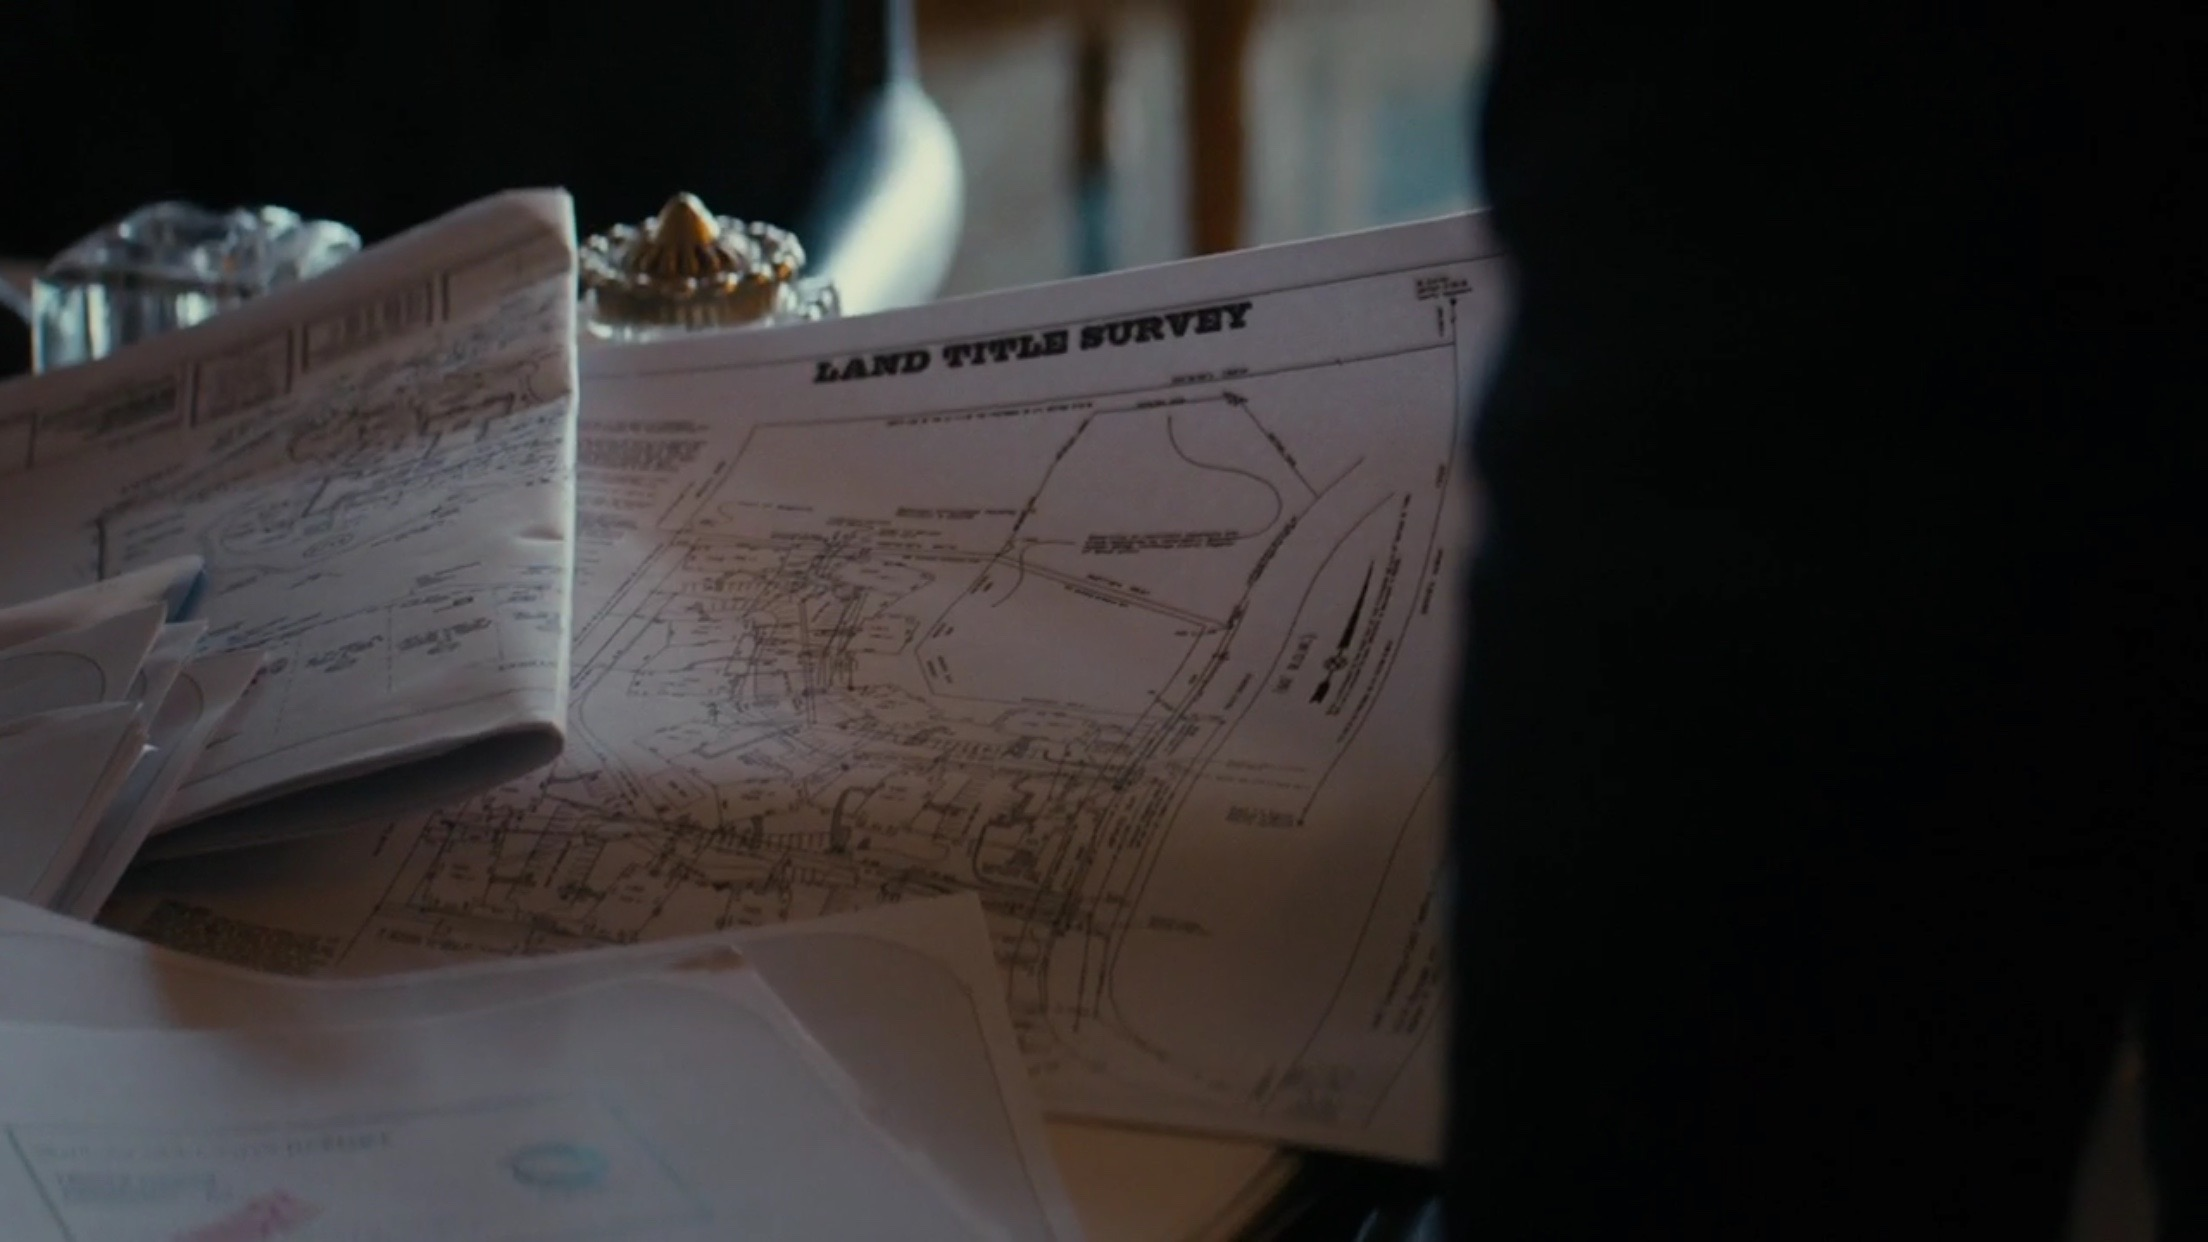 The land title survey Ani discovered in Chessani's house